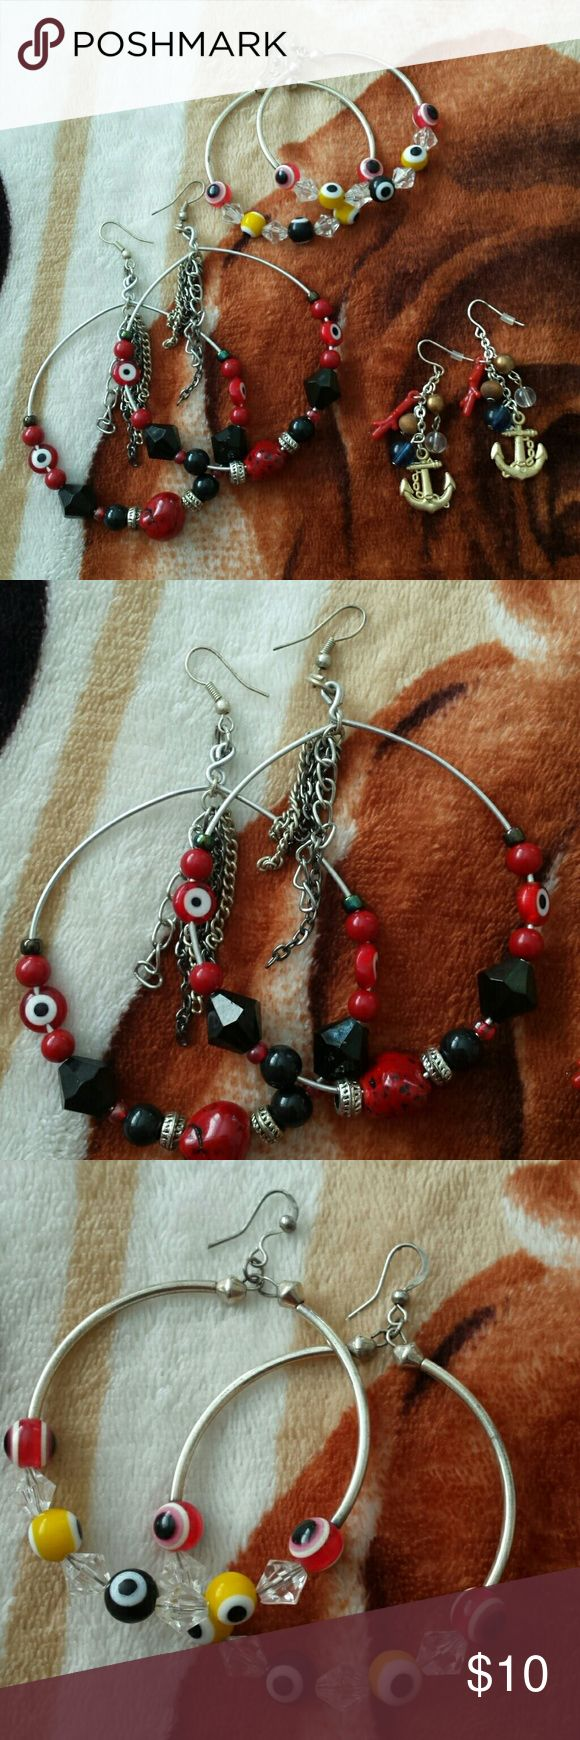 NWOT Earrings Bundle 1 pair of silver hoops with red, black & silver beads, silver and black hanging chain. 1 pair of silver hoops with red, black, yellow & clear beads. 1 pair of silver dangling chain earrings with golden anchor, blue, brown, bronze & clear beads with red hanging coral.  Feel free to ask any questions and or bundle for better pricing. If interested in just one pair feel free to comment. Jewelry Earrings